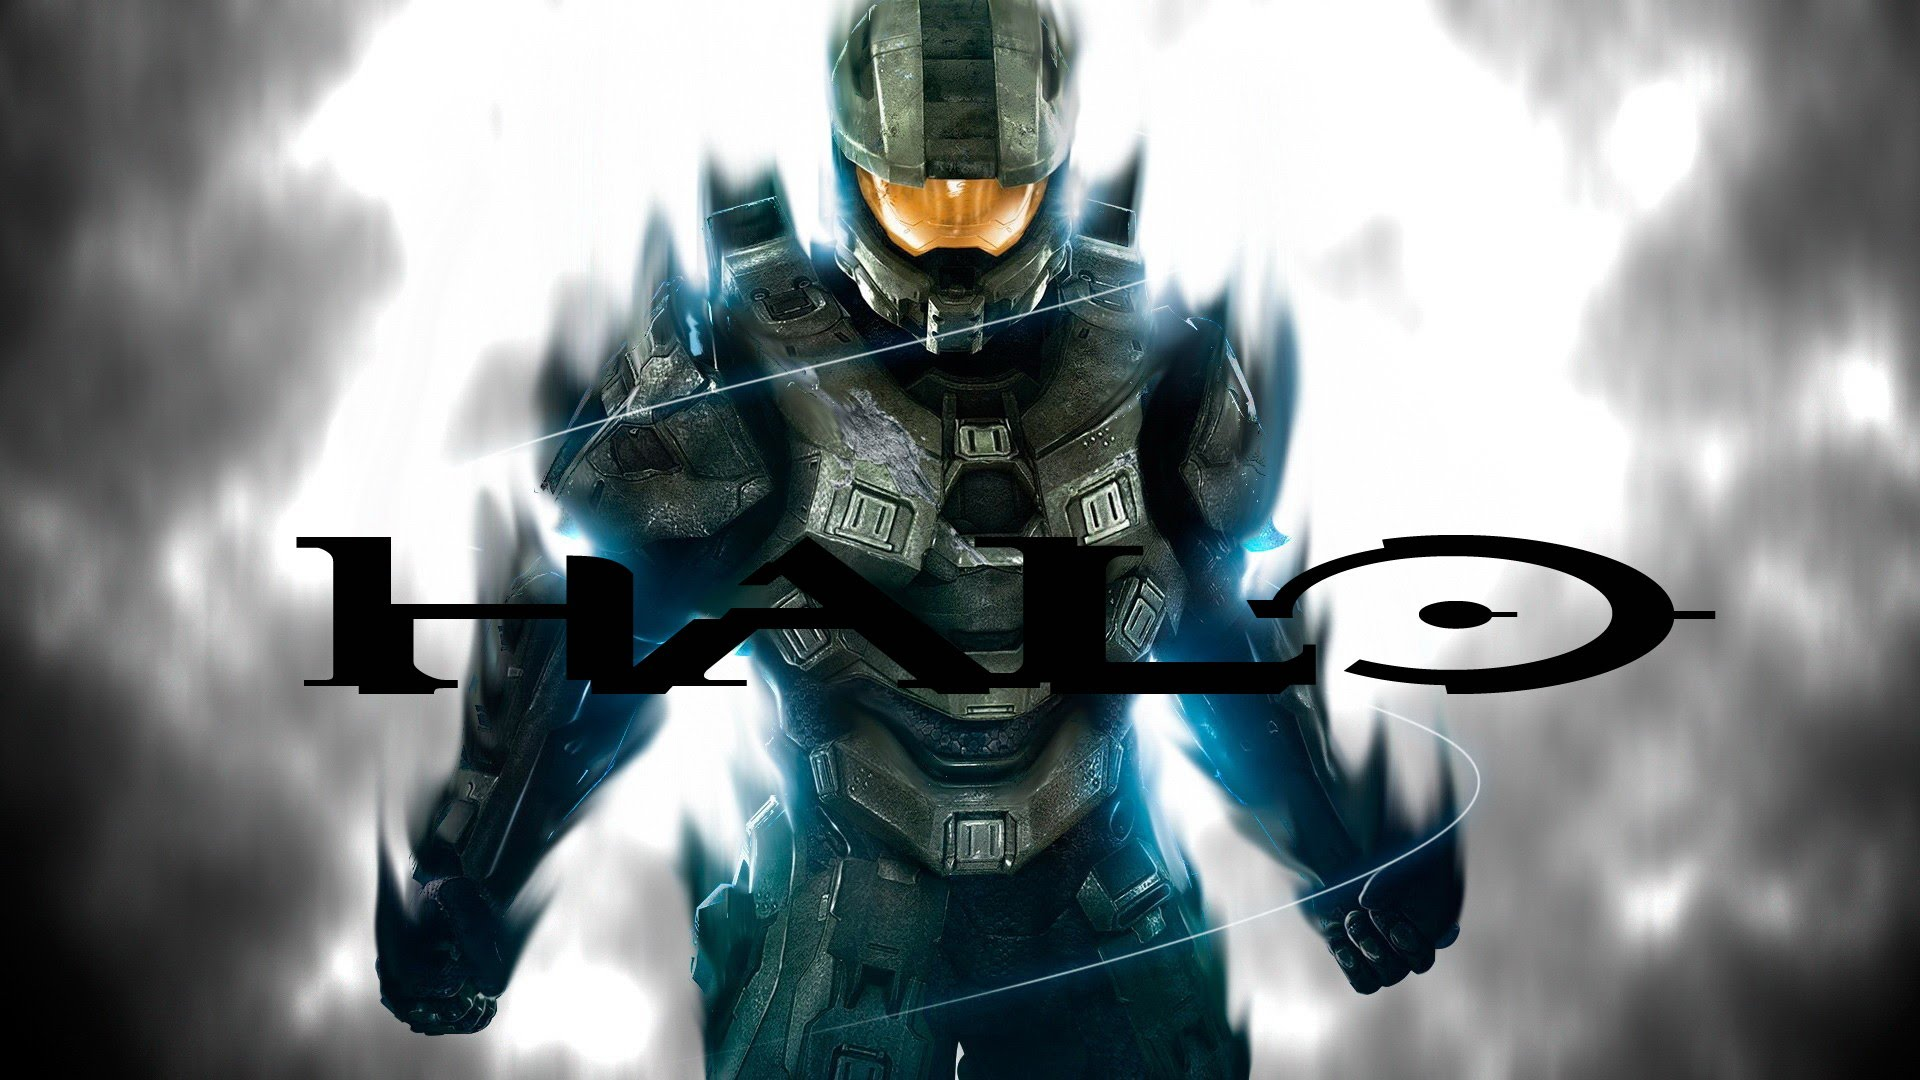 Halo: The Movie HD *Fan Made*(Halo Wars, Halo Reach, Combat Evolved, Halo 2, ODST, Halo 3, Halo 4)